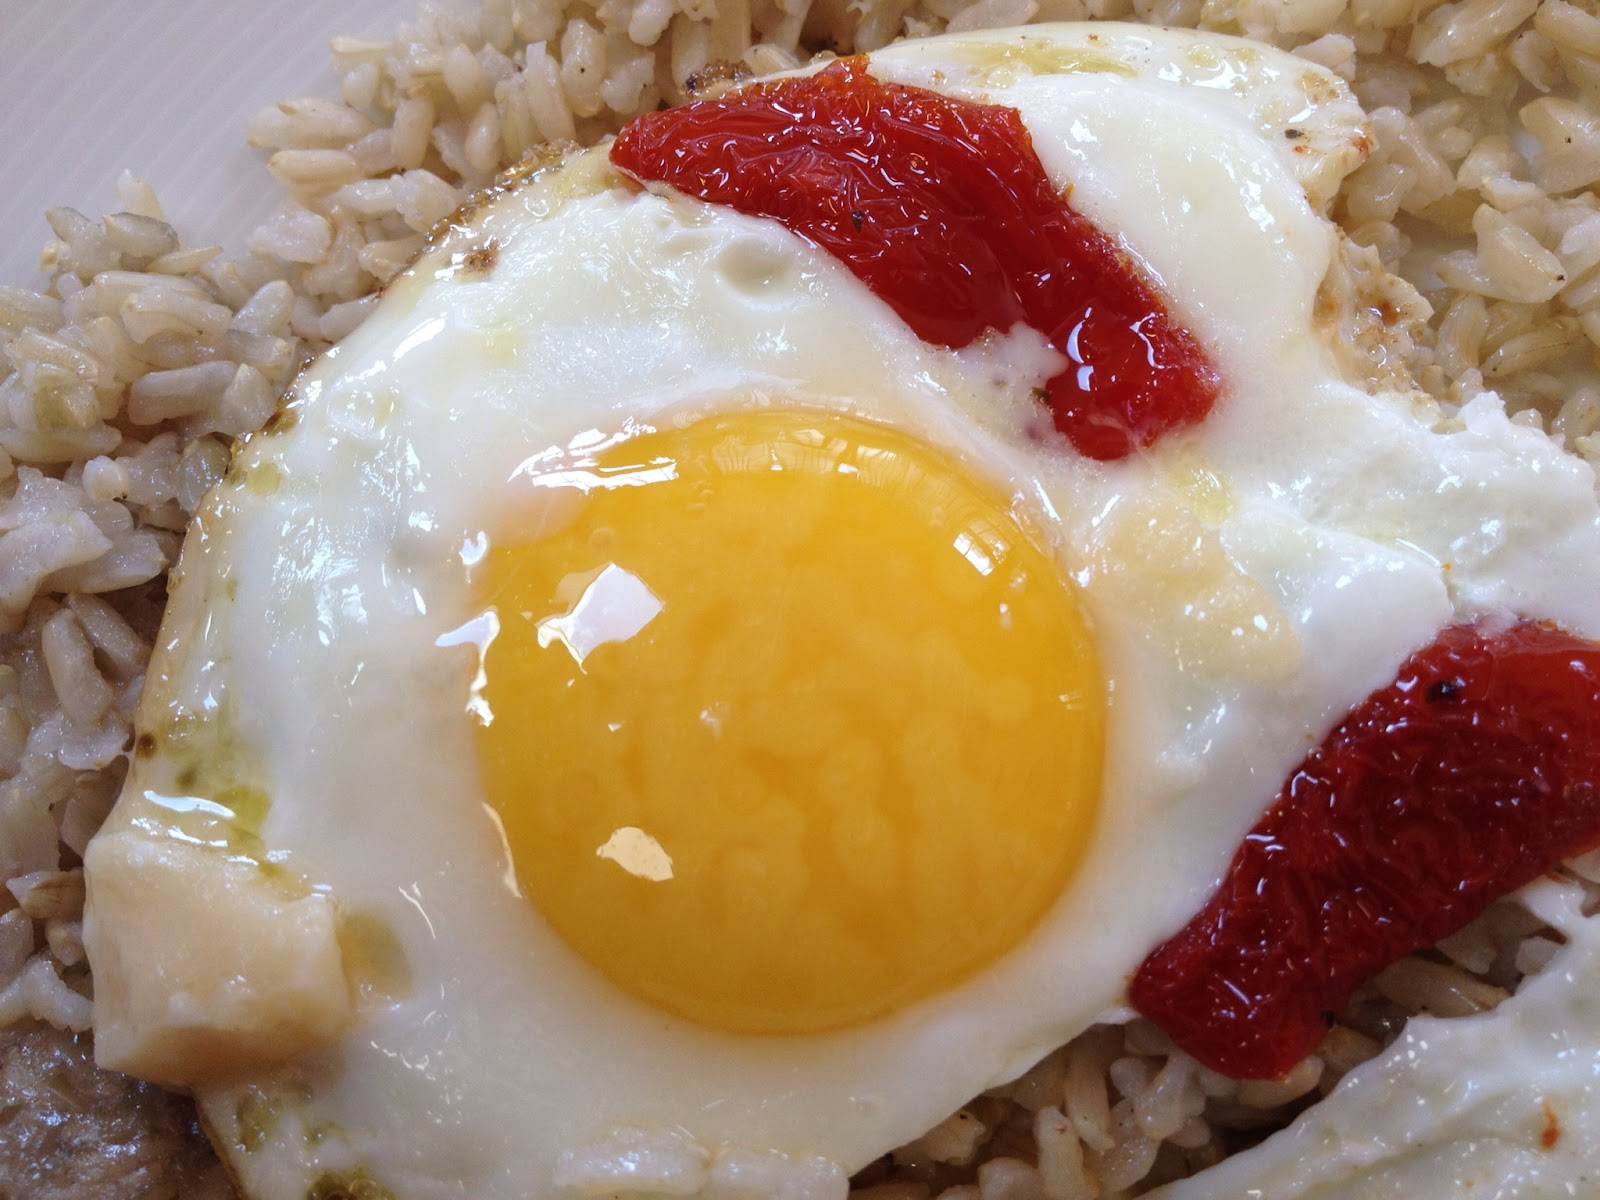 An organic egg with sun-dried tomato and Parmigiano Reggiano cheese.